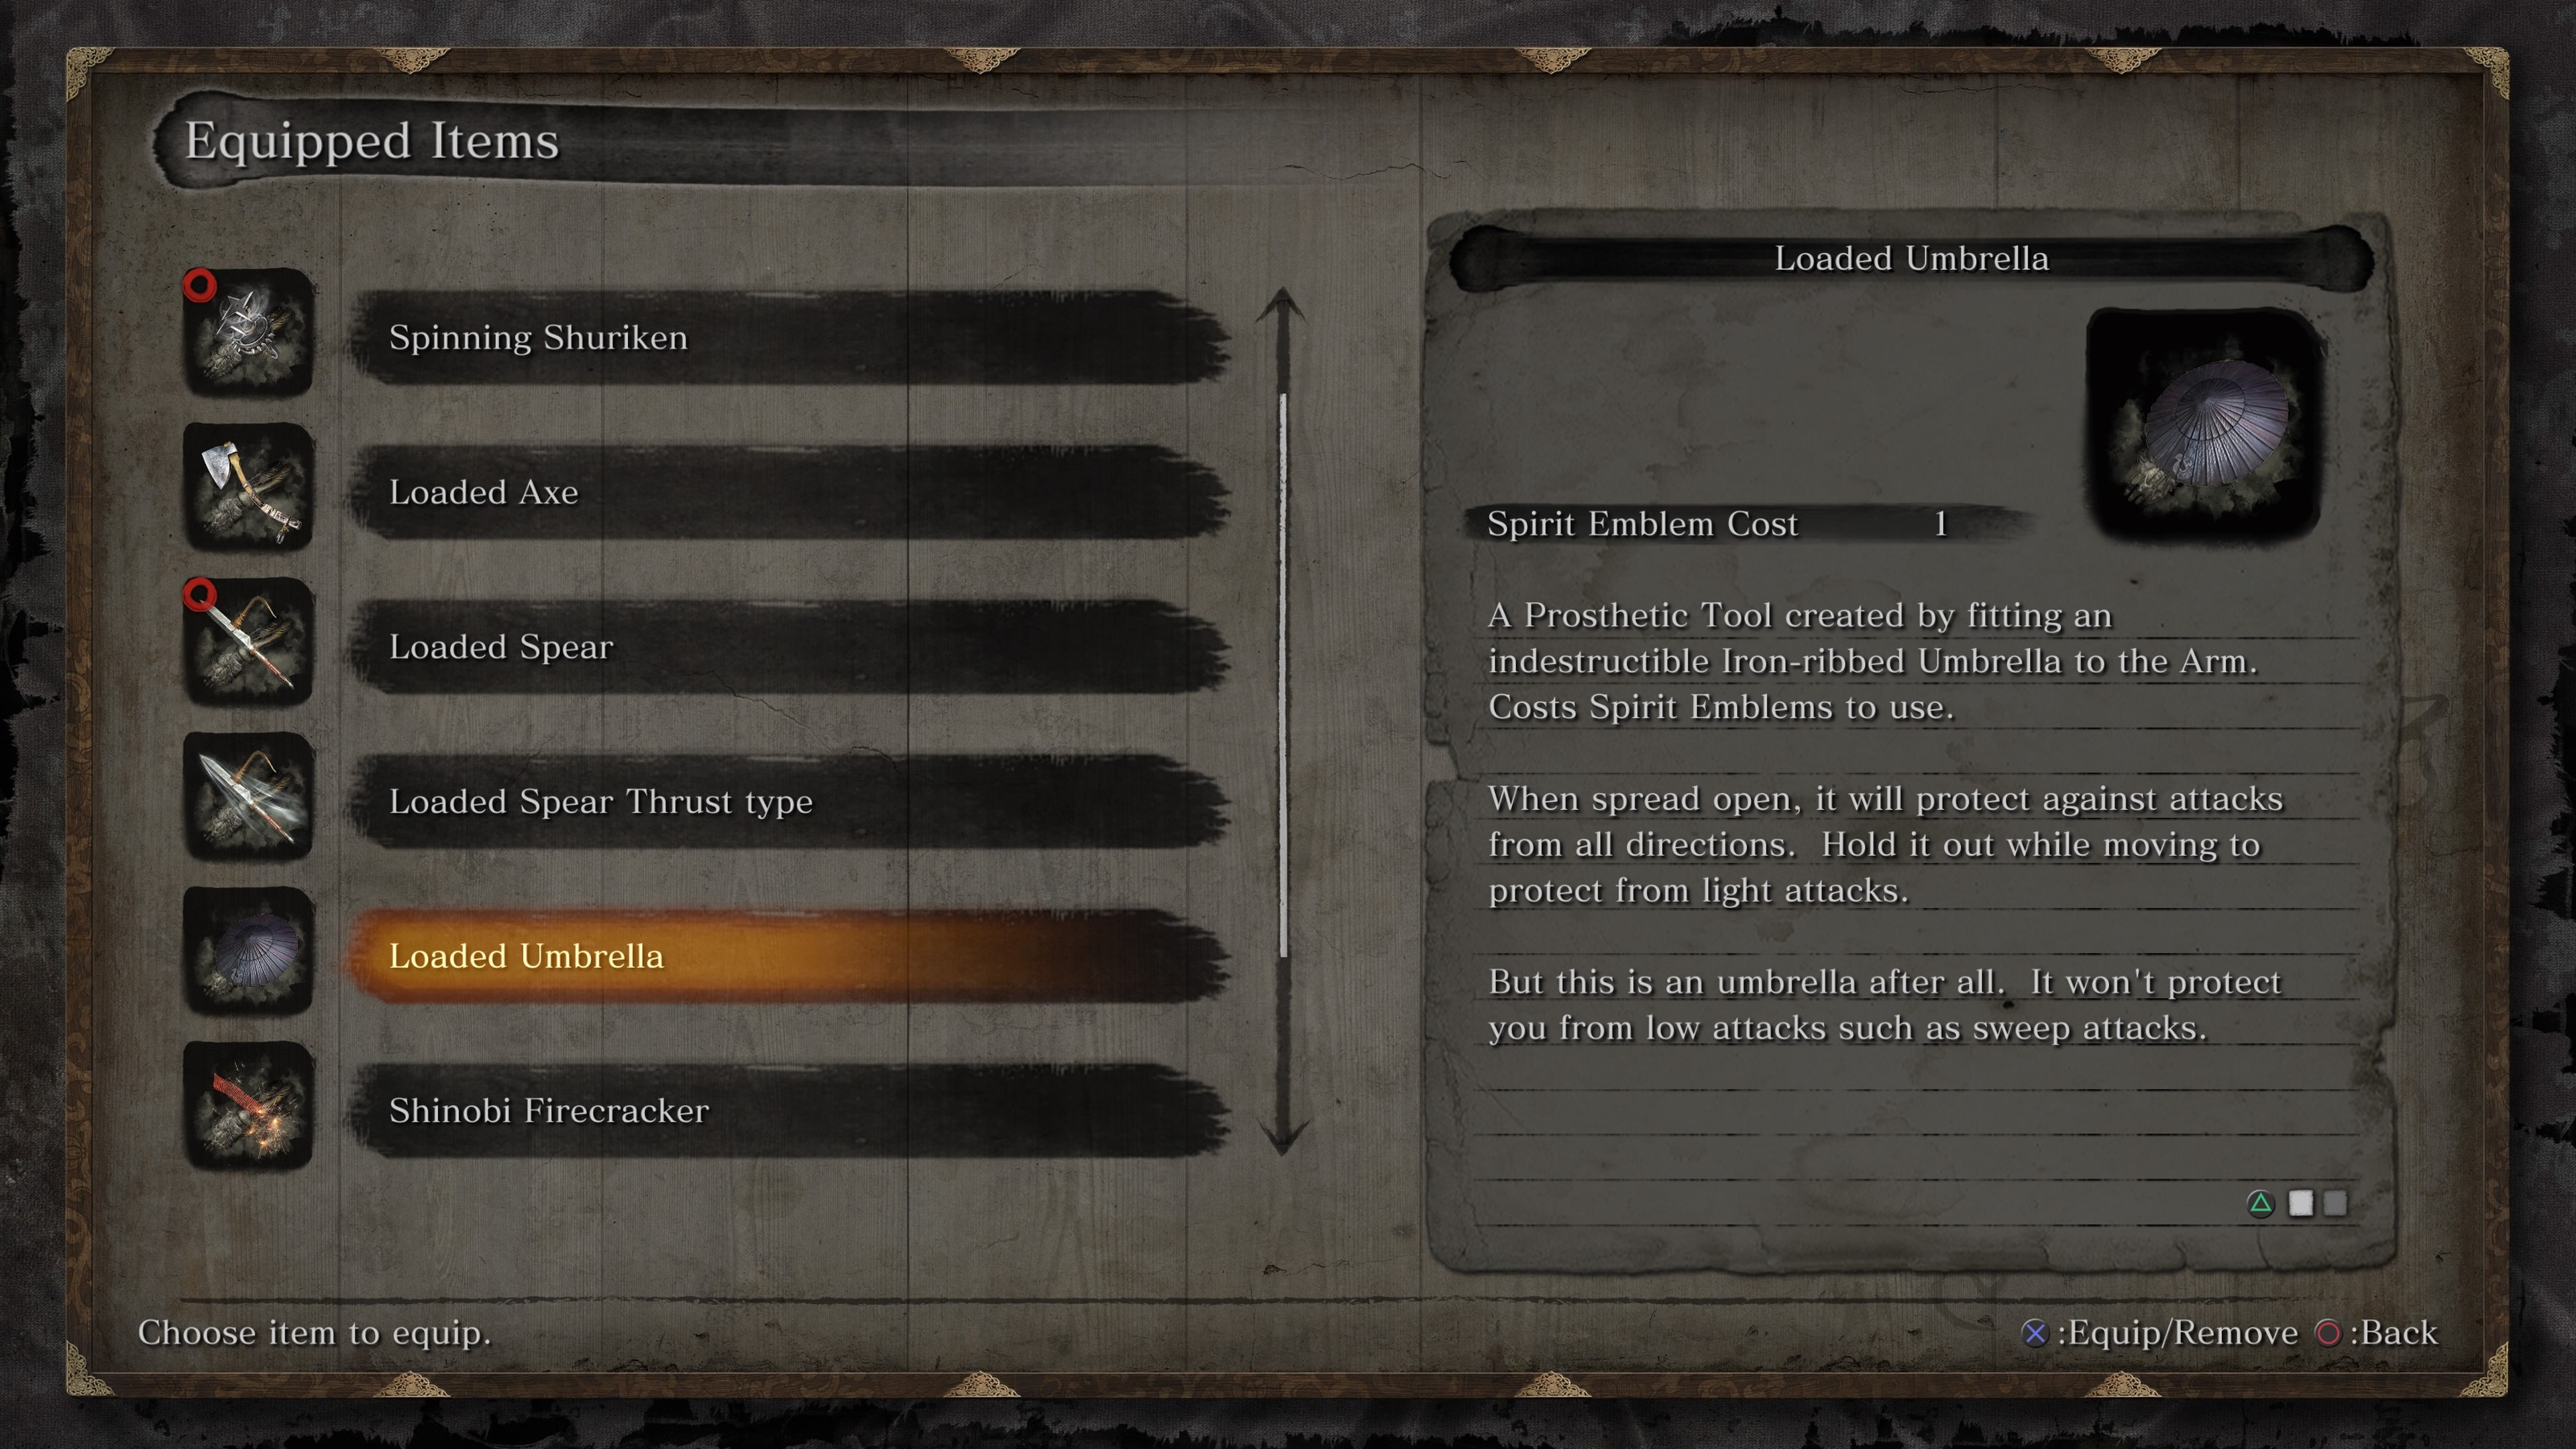 Where to find the Loaded Umbrella shinobi prosthetic tool in Sekiro: Shadows Die Twice